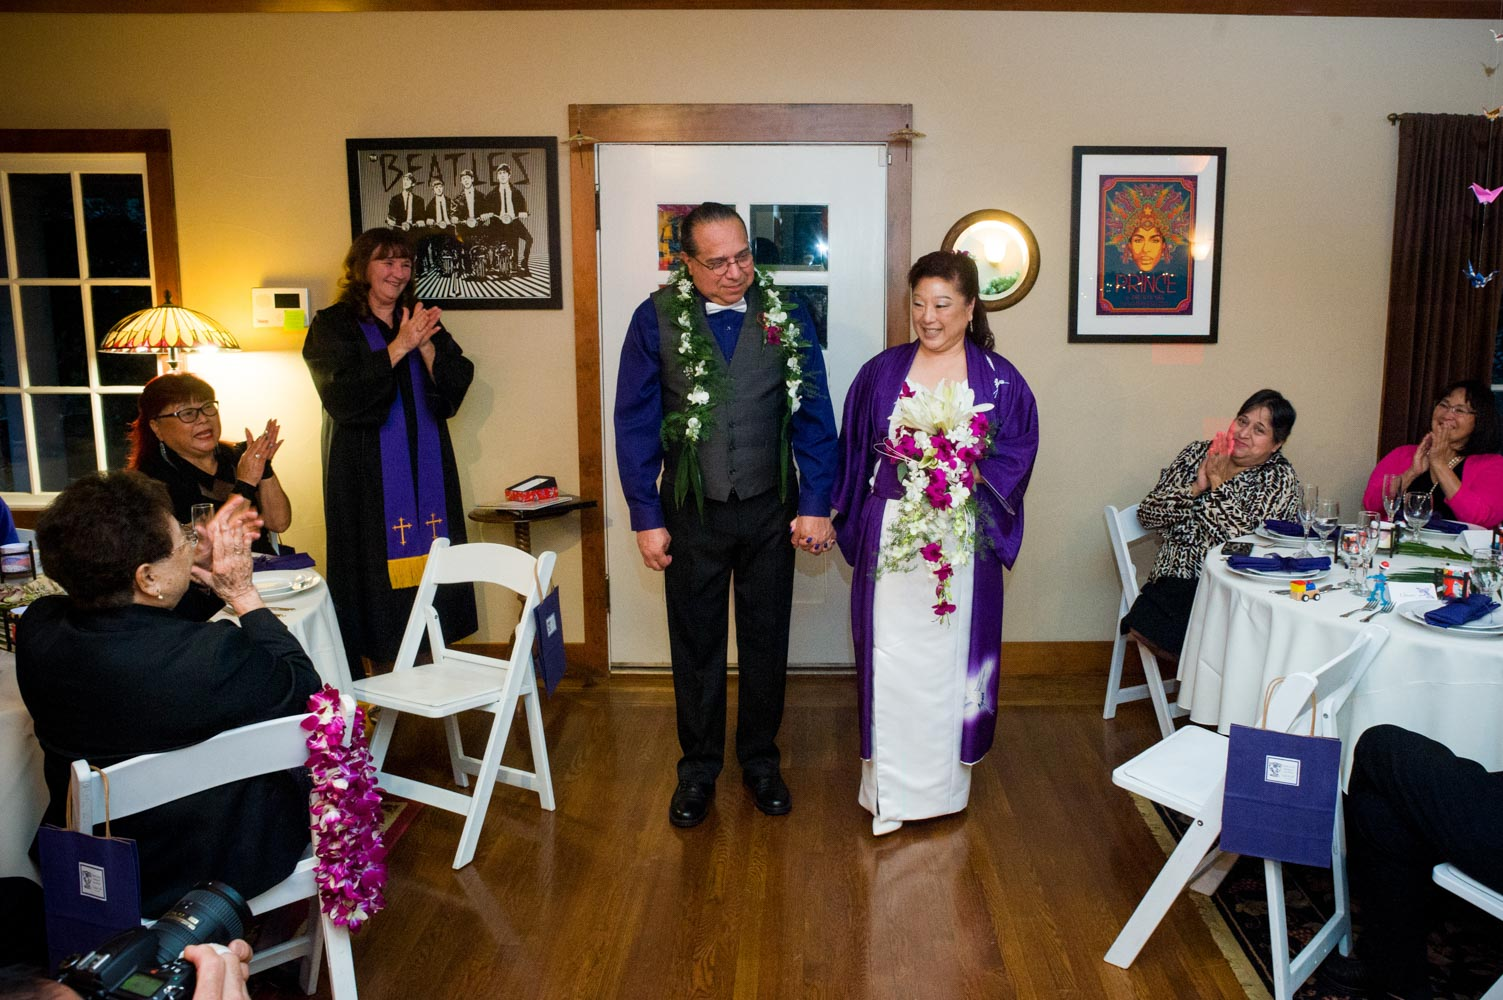 Bride and groom smiling at guests, which wedding officiant applauds in background.